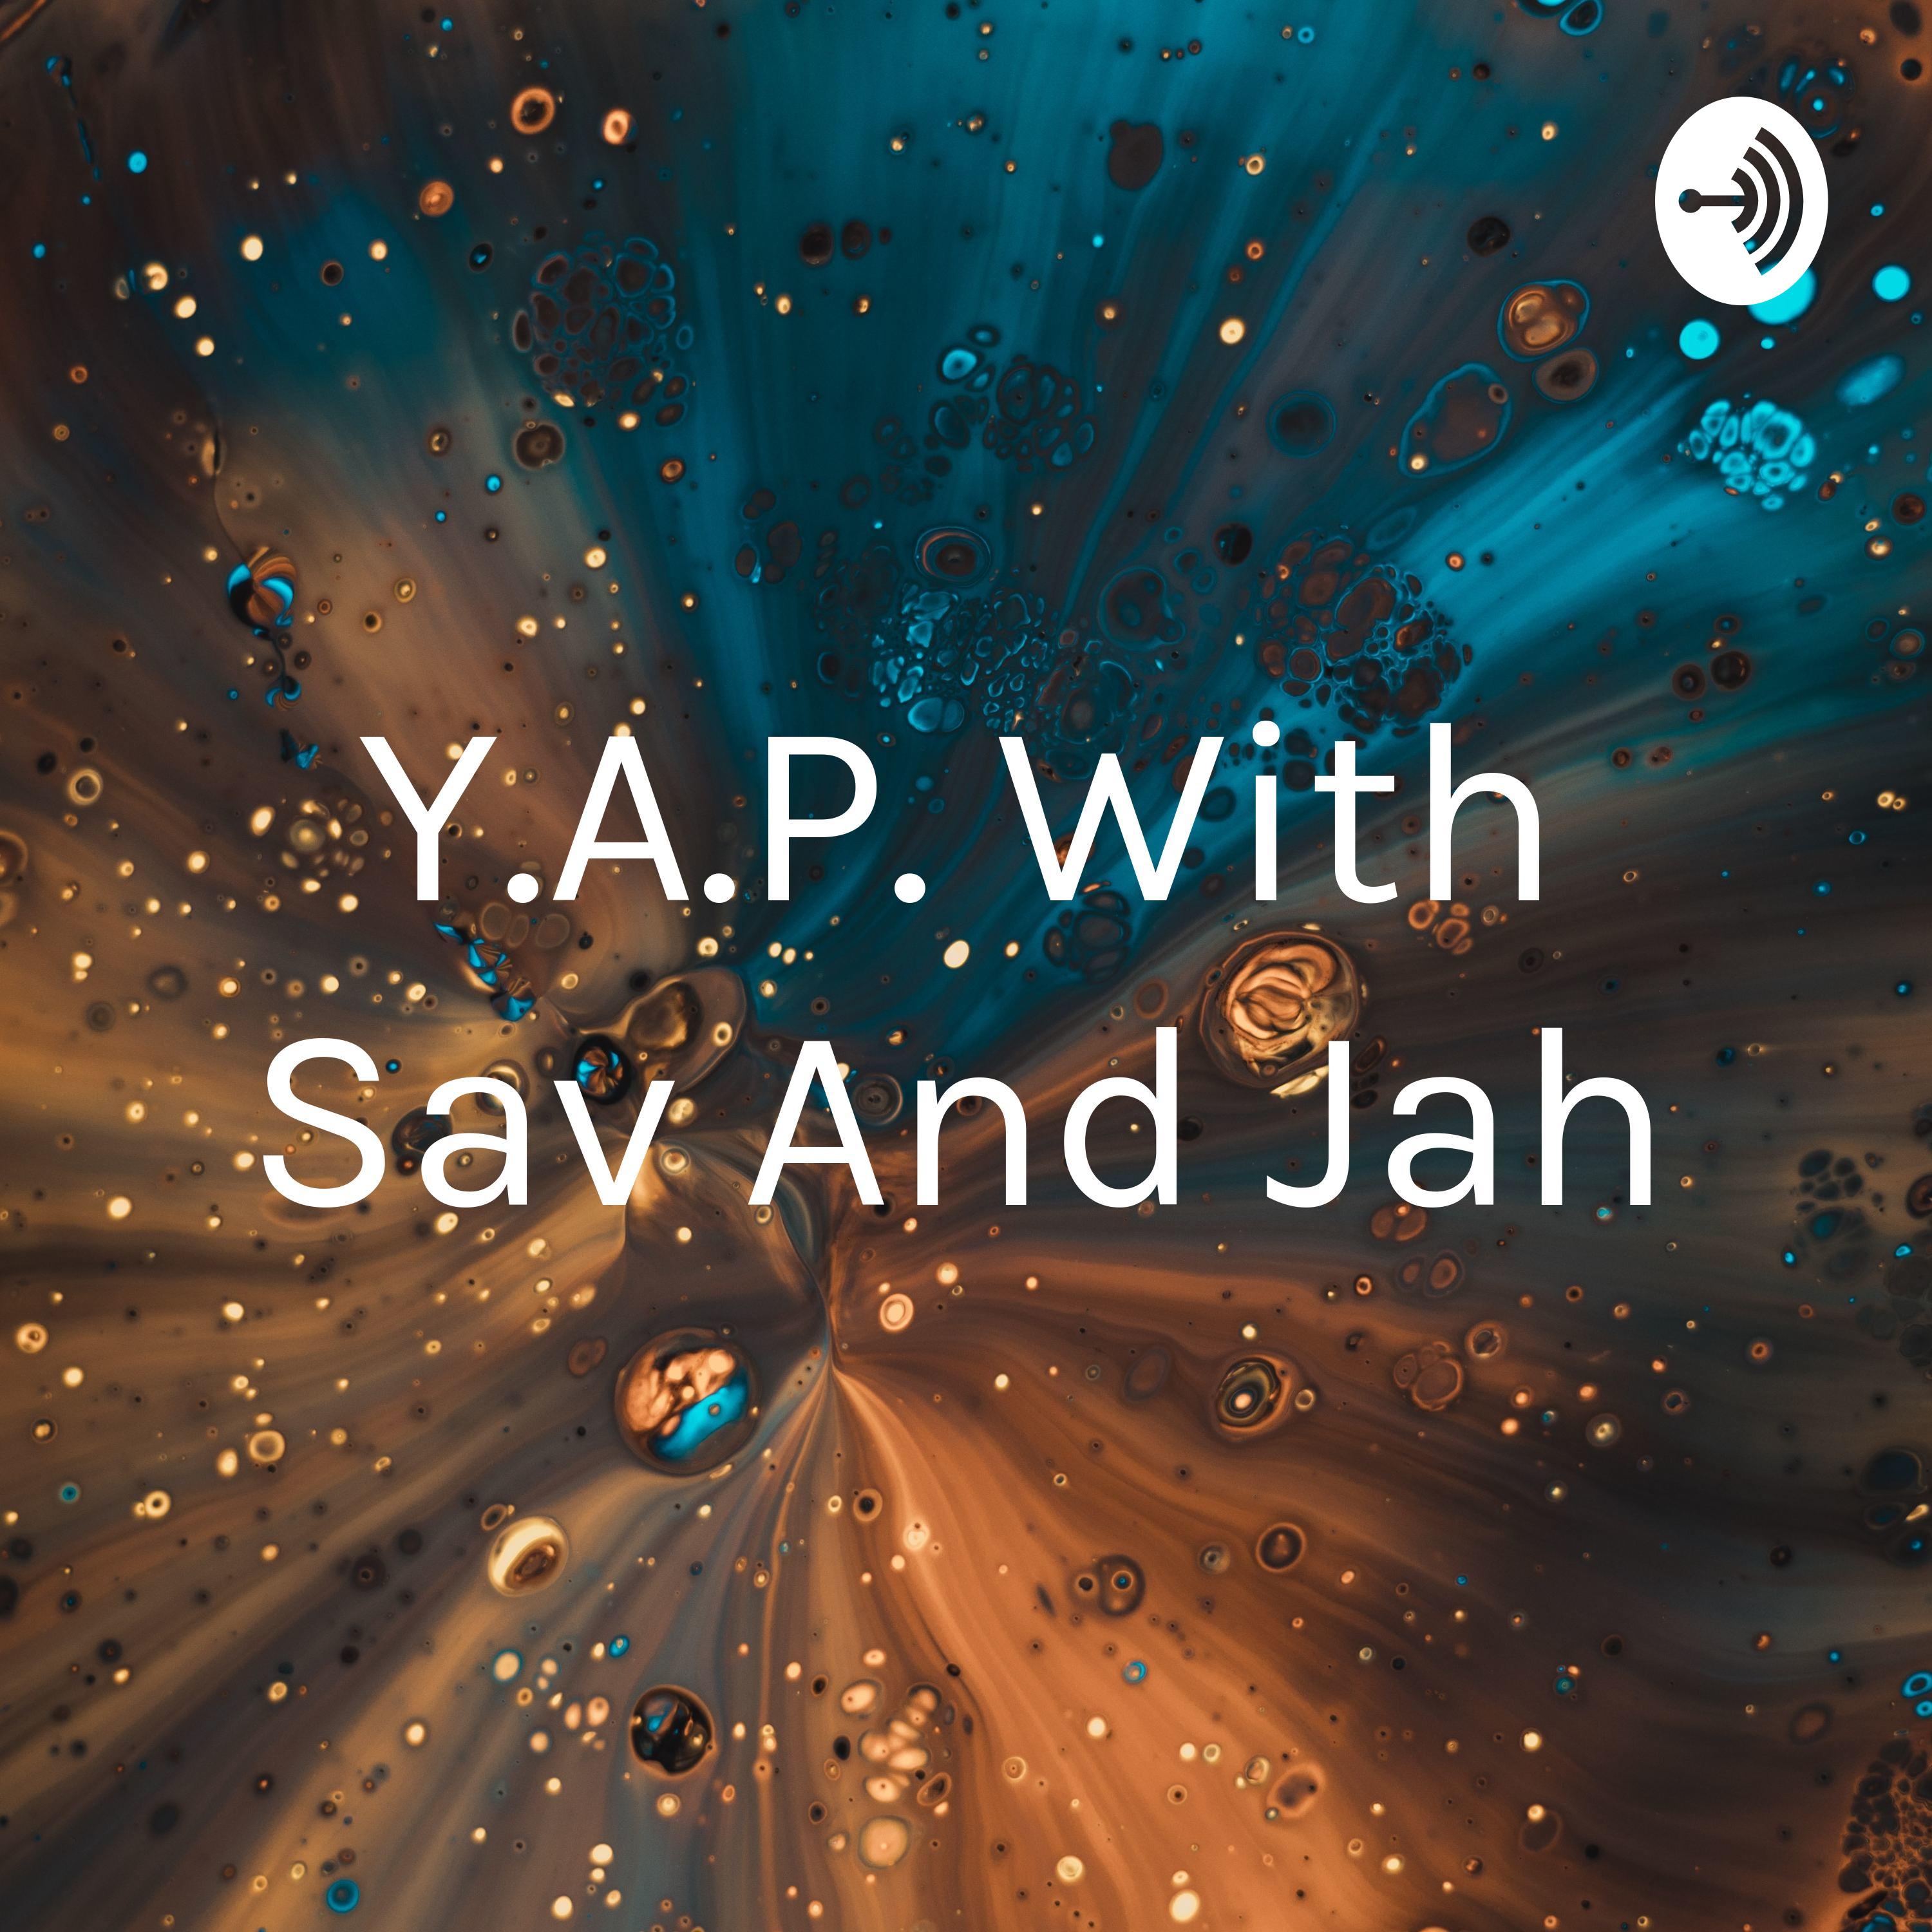 Y.A.P. With Sav And Jah